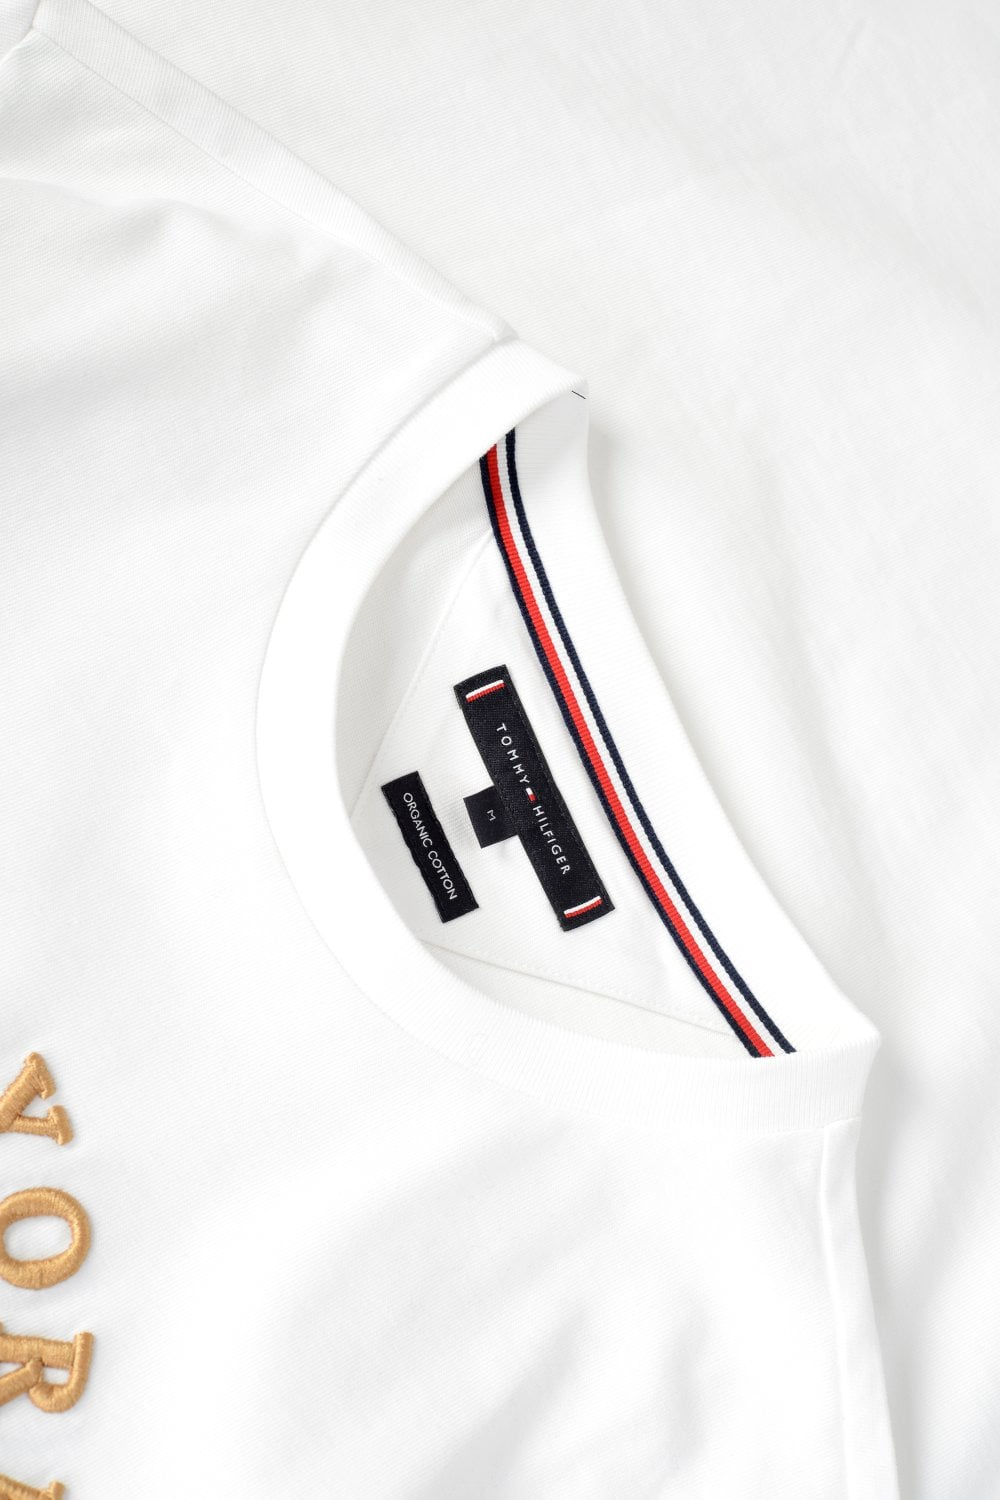 dfca3d076 TOMMY HILFIGER Tommy Hilfiger New York T-shirt - Clothing from ...